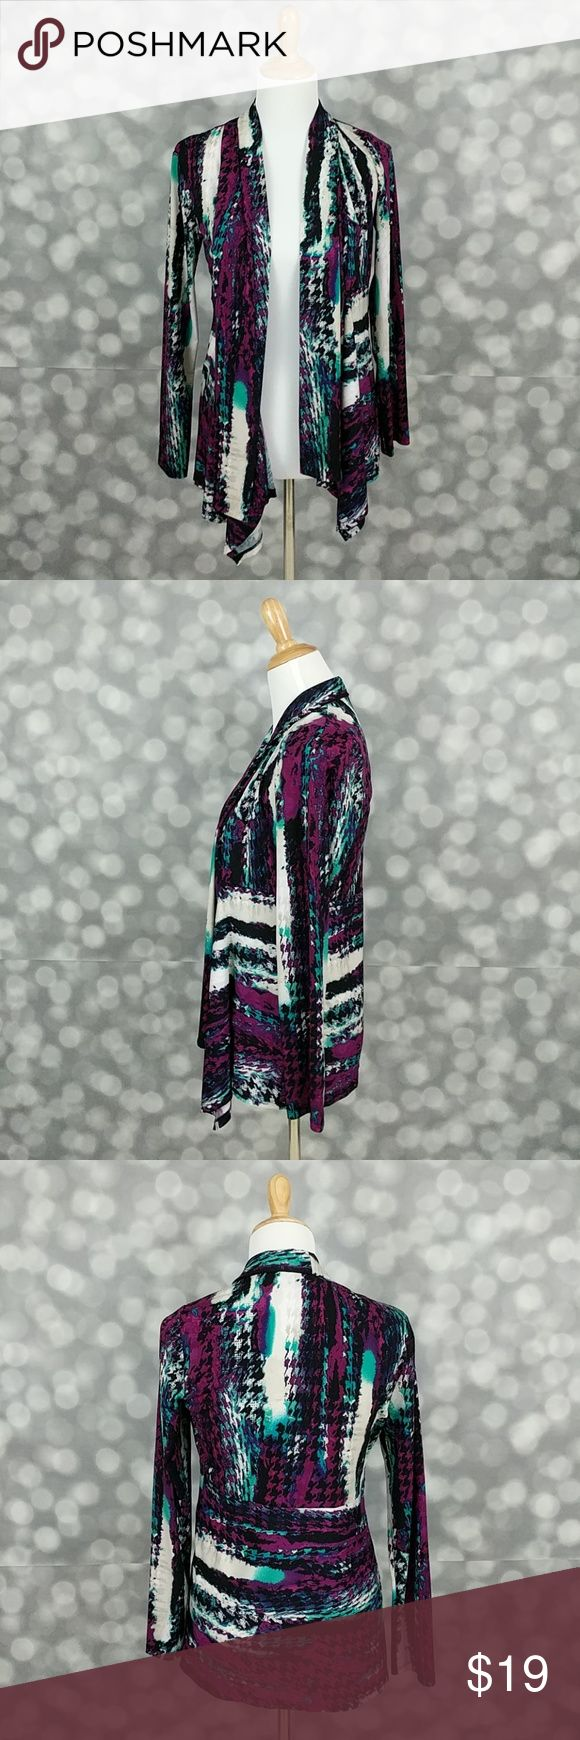 Kasper Open Cardigan Bold printed open cardigan from Kasper that would look great with a sheath dress or out with jeans!  Laying flat, cardigan is approximately 19 inches from armpit to armpit (easily adjustable) and is 25 inches in length in back. Kasper Sweaters Cardigans